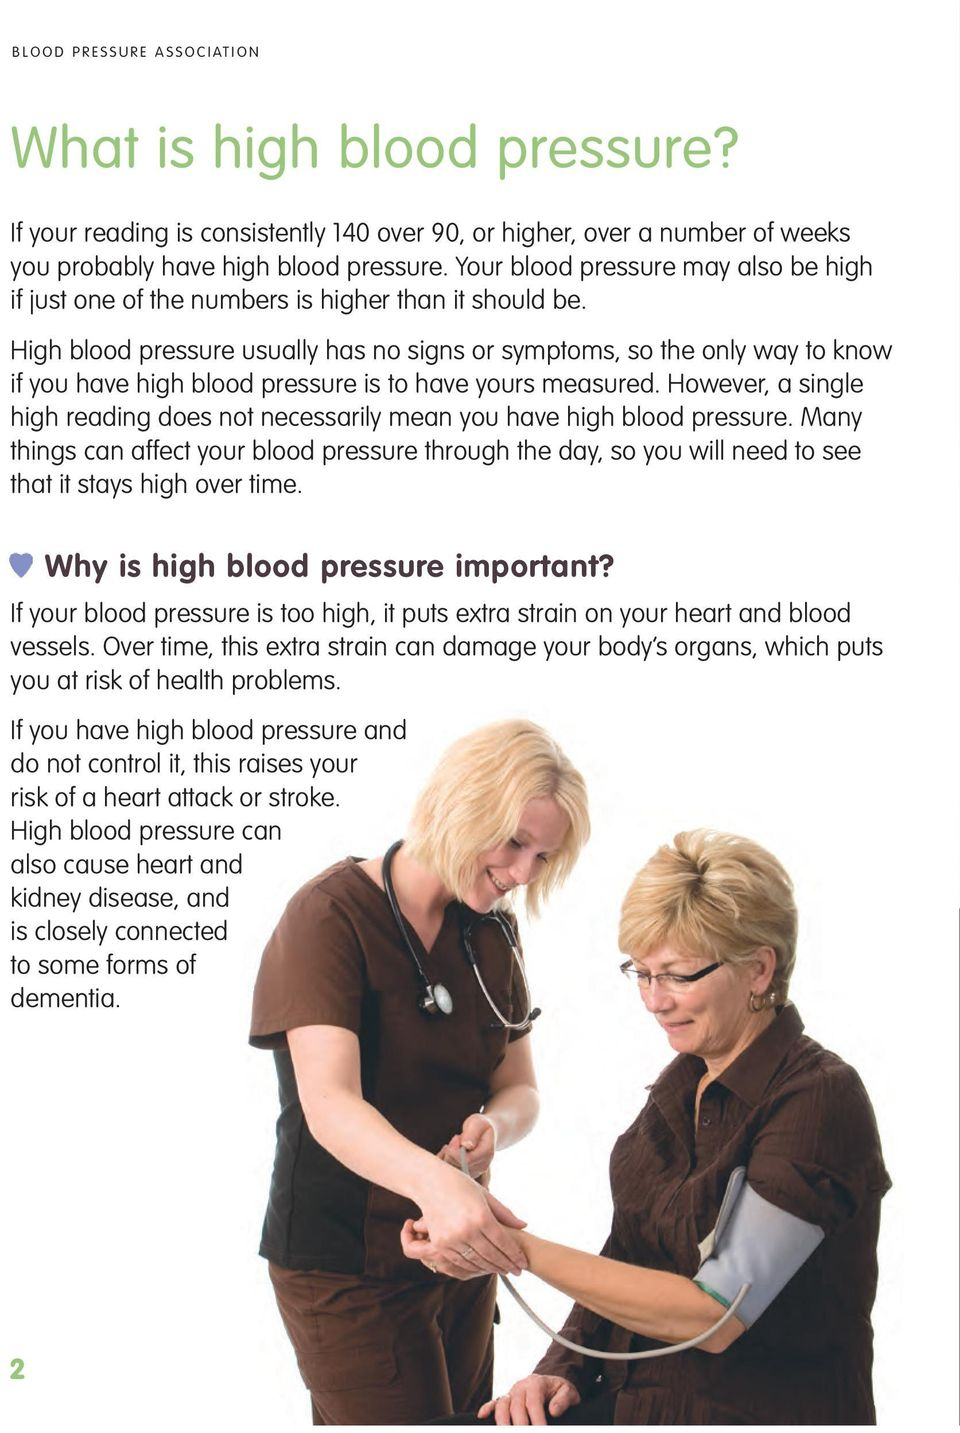 High blood pressure usually has no signs or symptoms, so the only way to know if you have high blood pressure is to have yours measured.